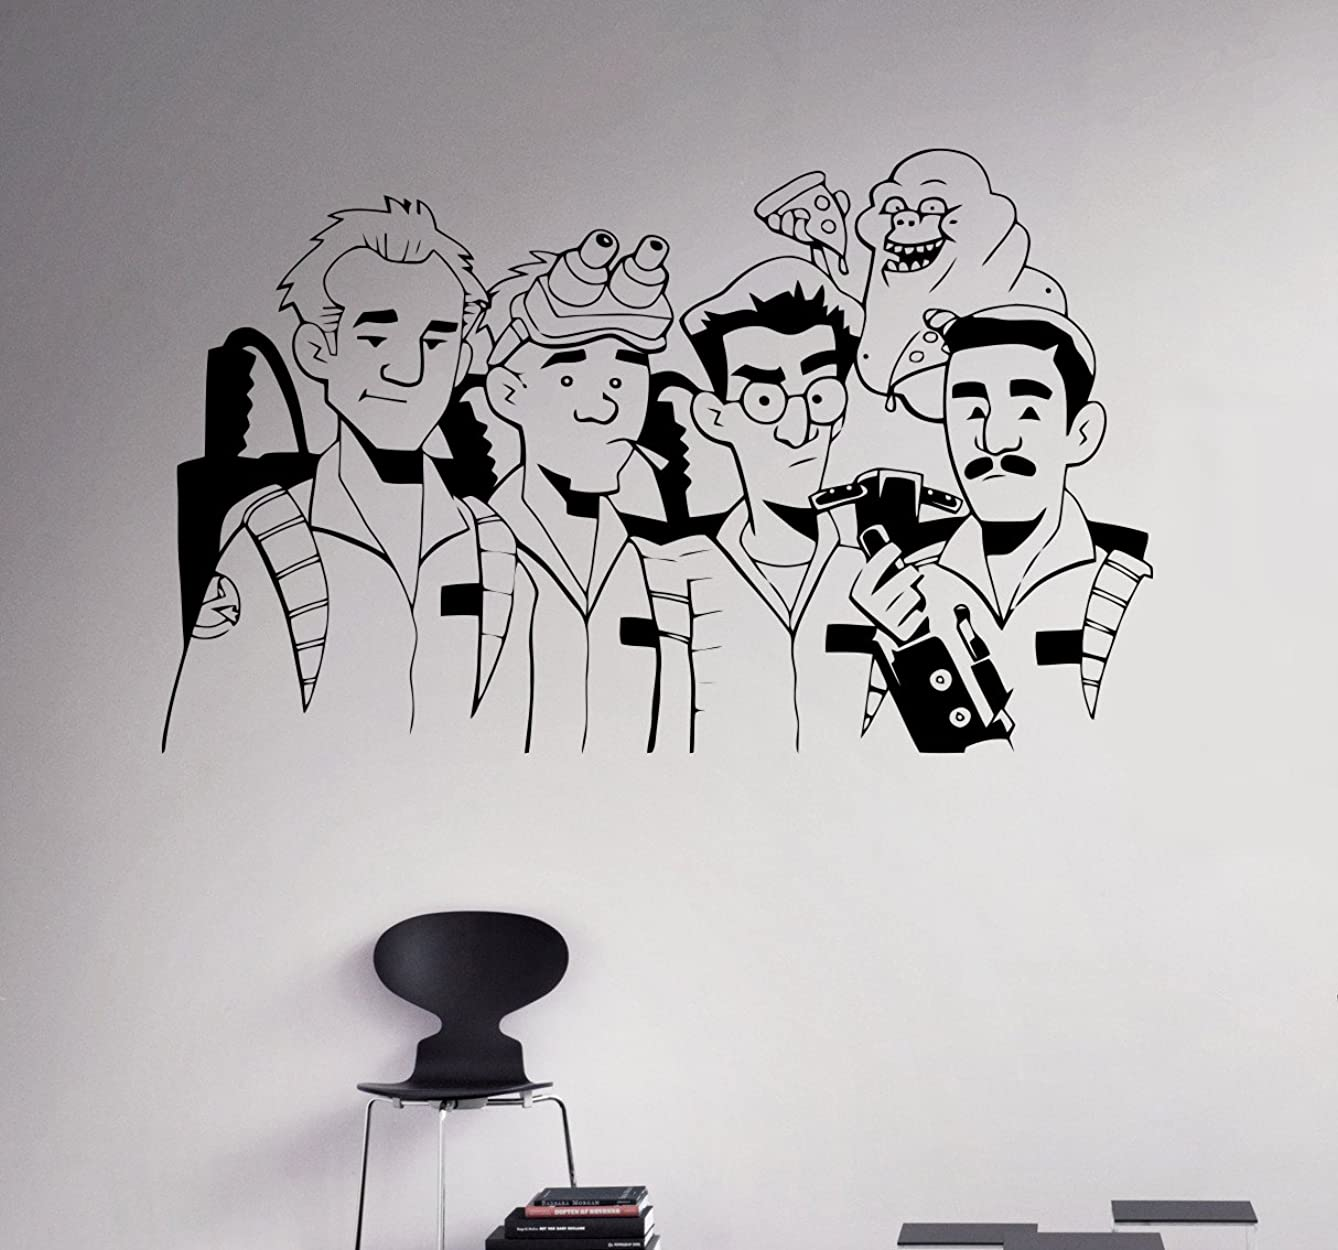 Ghostbusters Wall Vinyl Decal Animated Series Wall Sticker Cartoons Home Interior Removable Children Kids Room Decor 14(gbr)